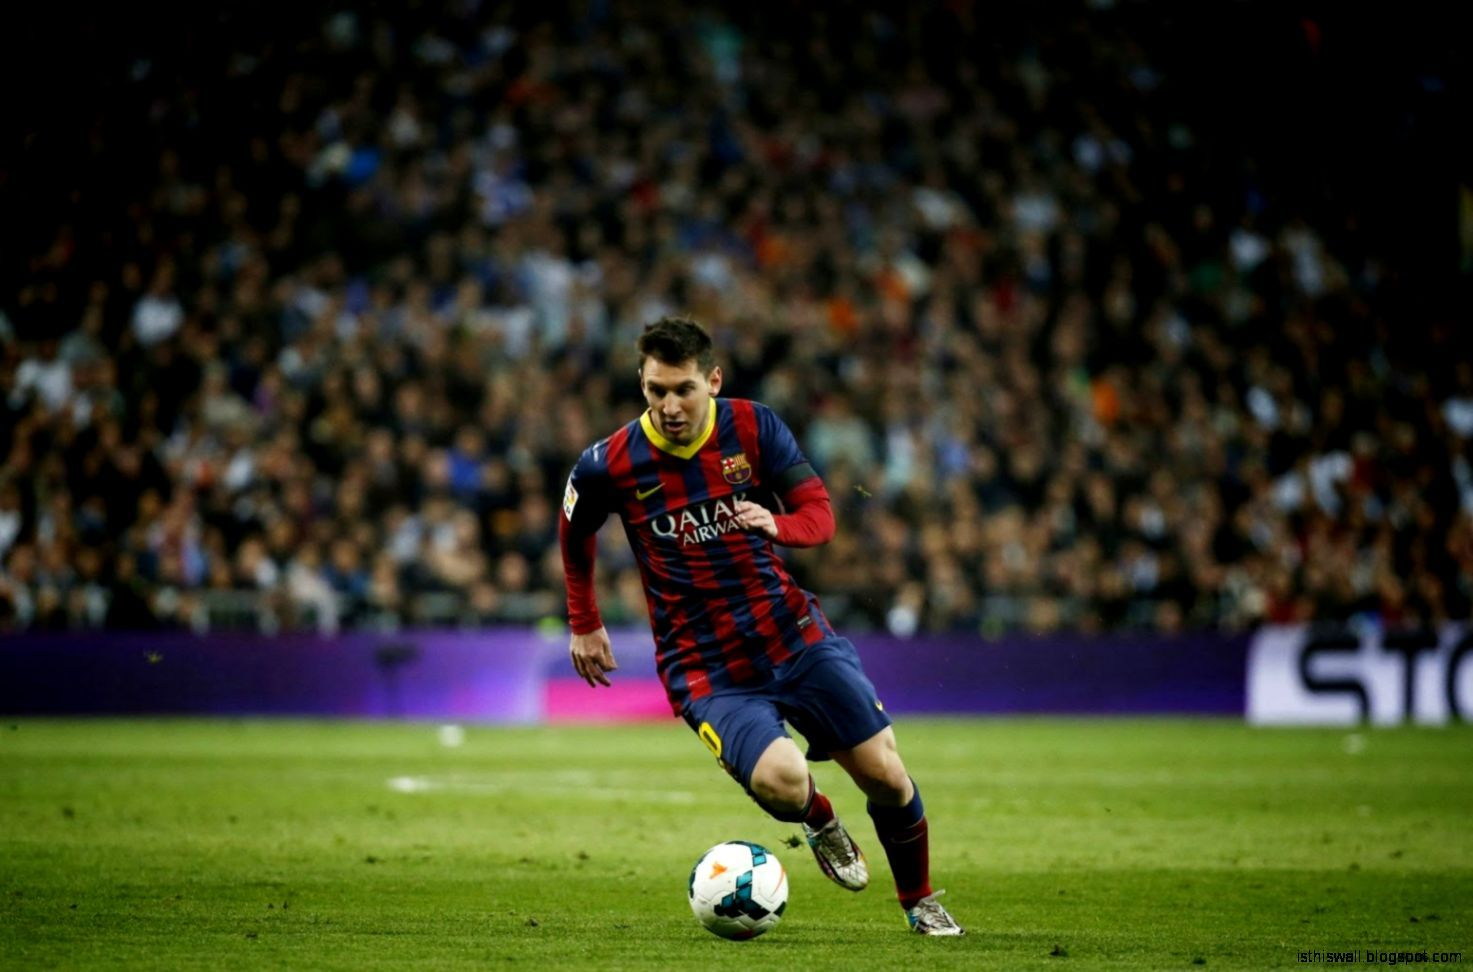 Lionel Messi Iphone HD Wallpaper HD Wallpapers Pinterest